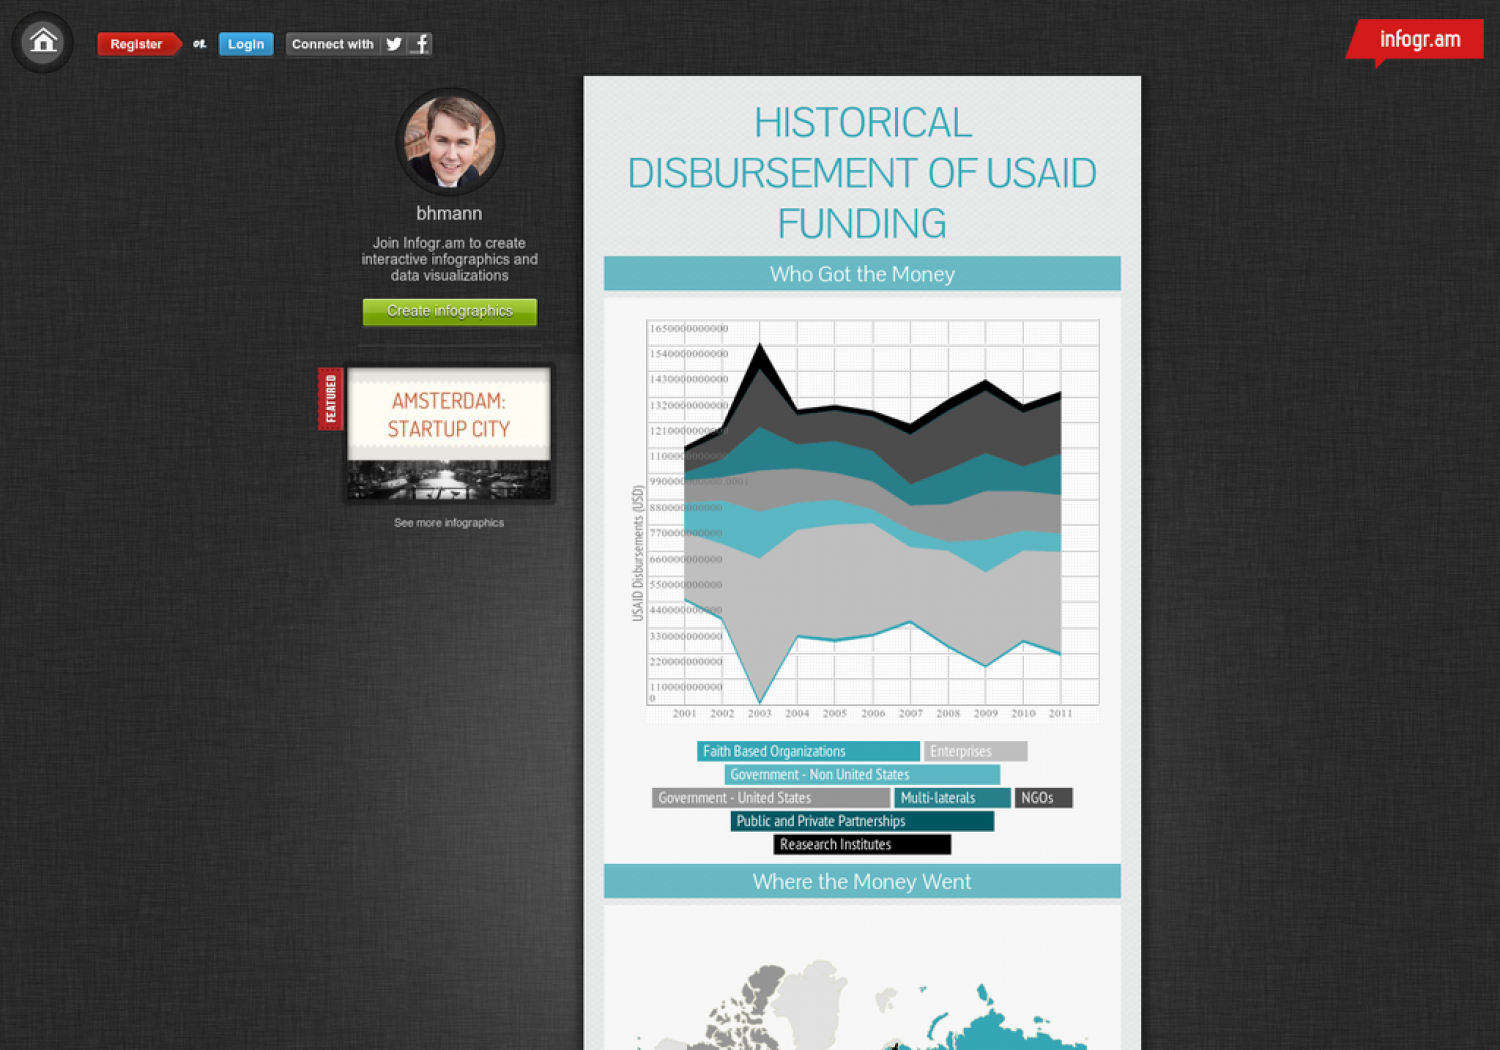 Historical Disbursement of USAID Funding Infographic